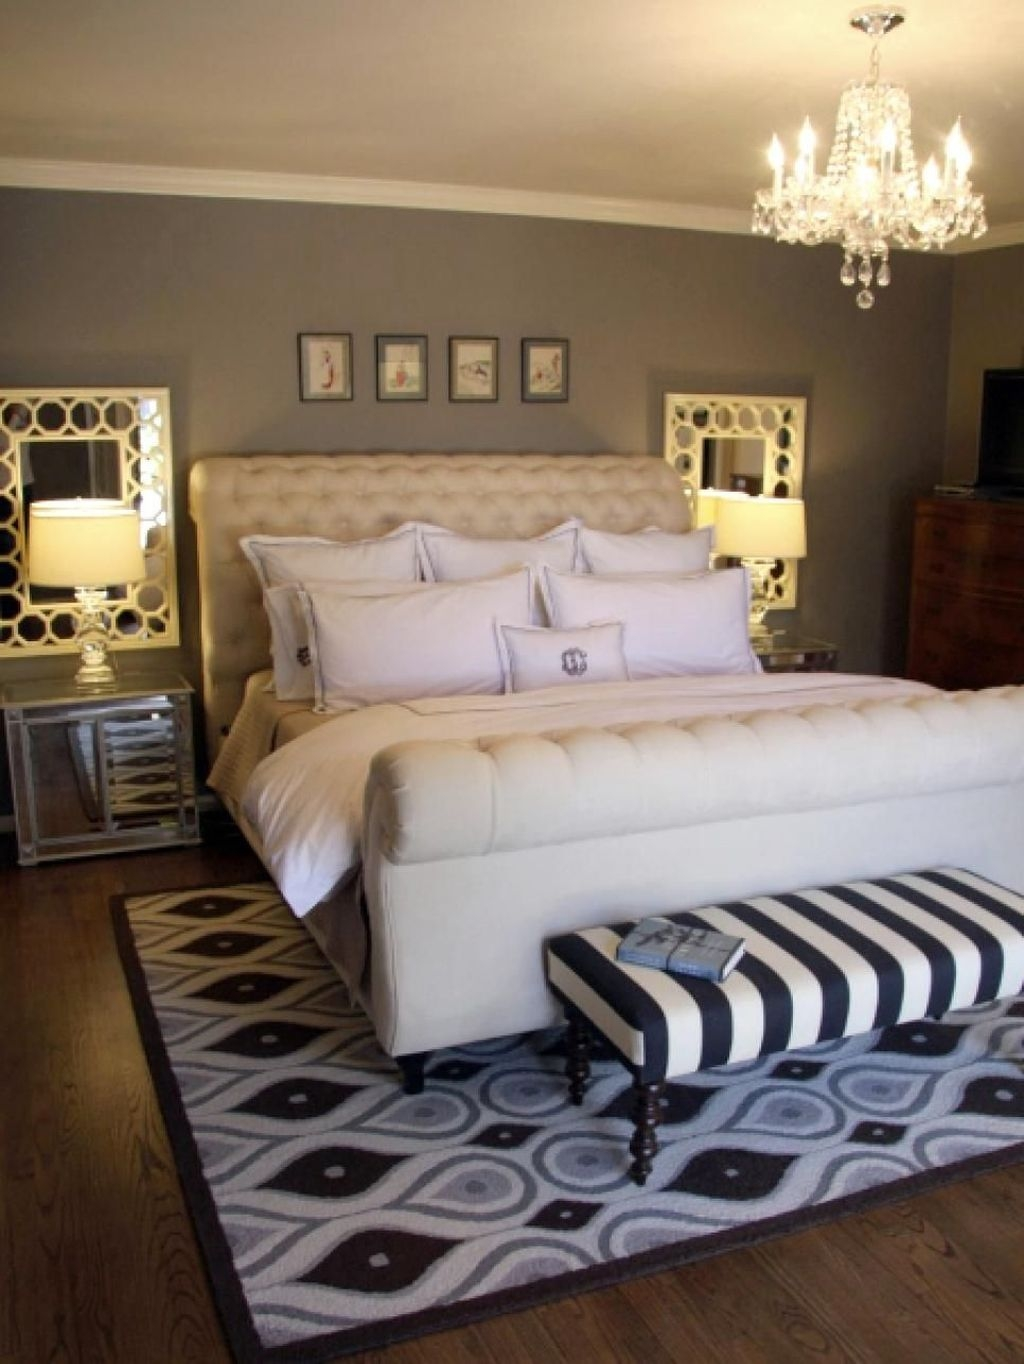 Make Your Bedroom More Romantic With These Romantic Bedroom Decorations 25